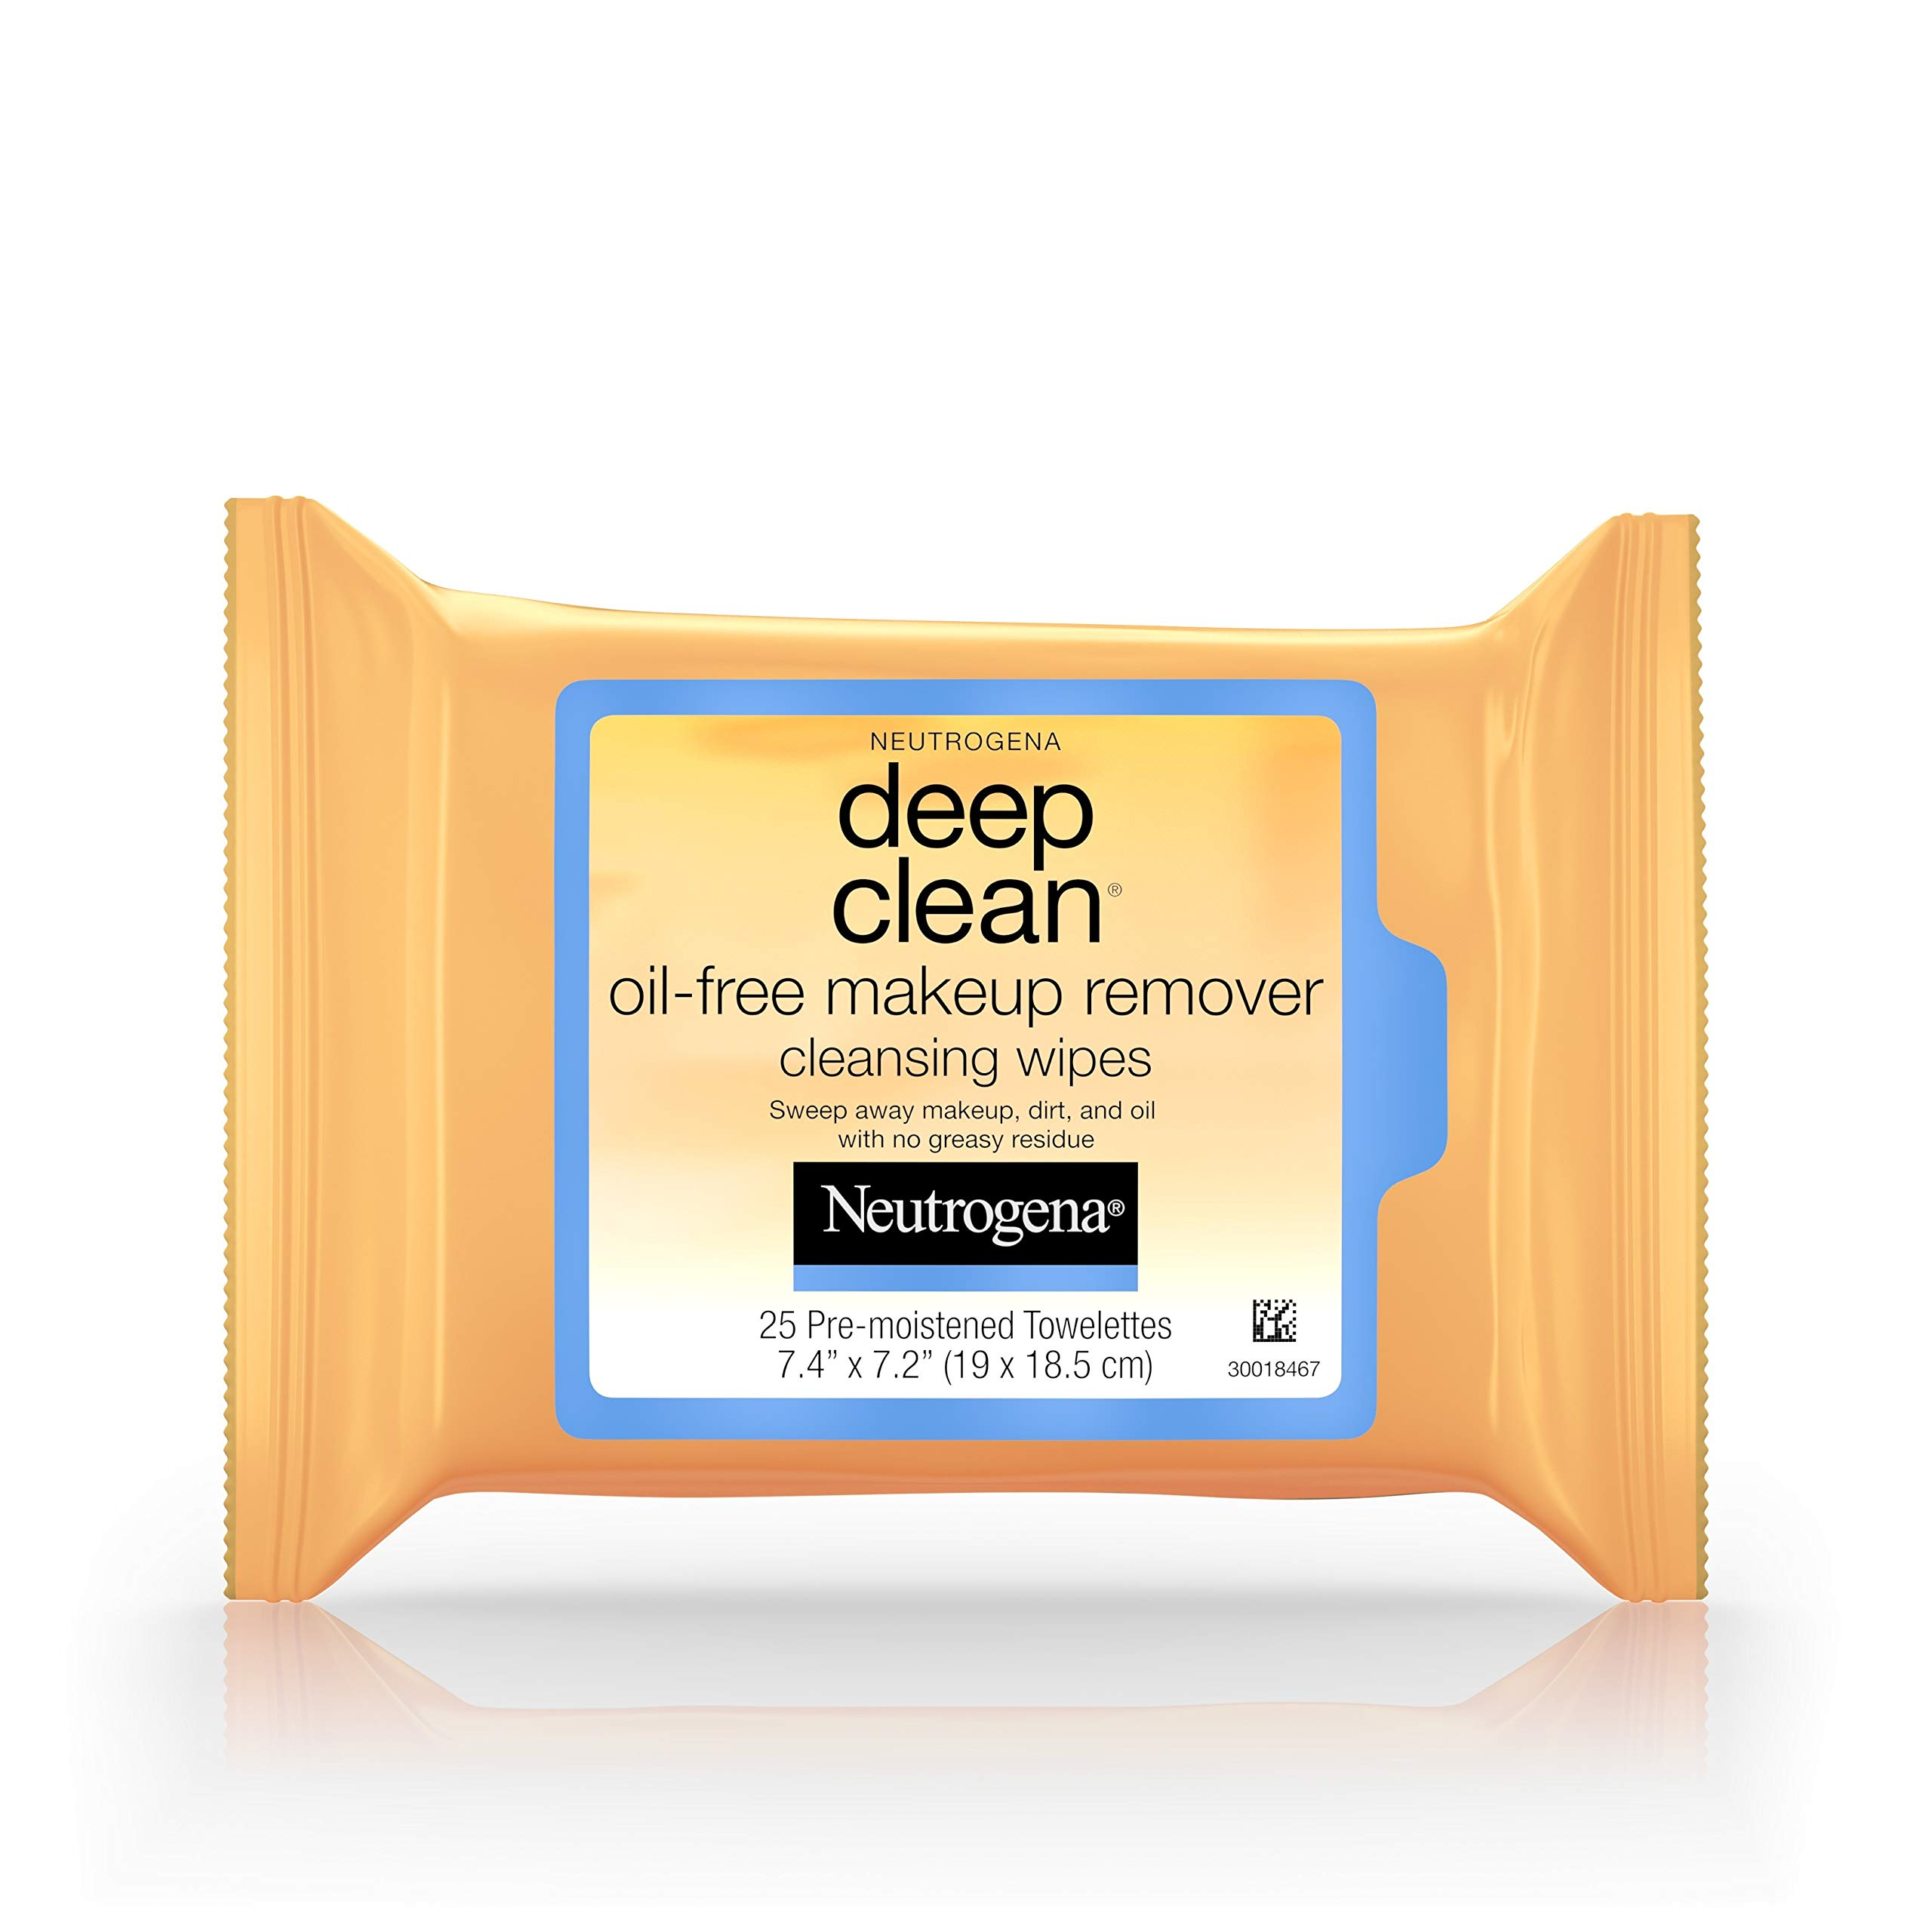 Neutrogena Deep Clean Oil-Free Makeup Remover Cleansing Face Wipes, Daily Cleansing Towelettes to Remove Dirt, Oil, and Makeup, 25 ct (Pack of 6)